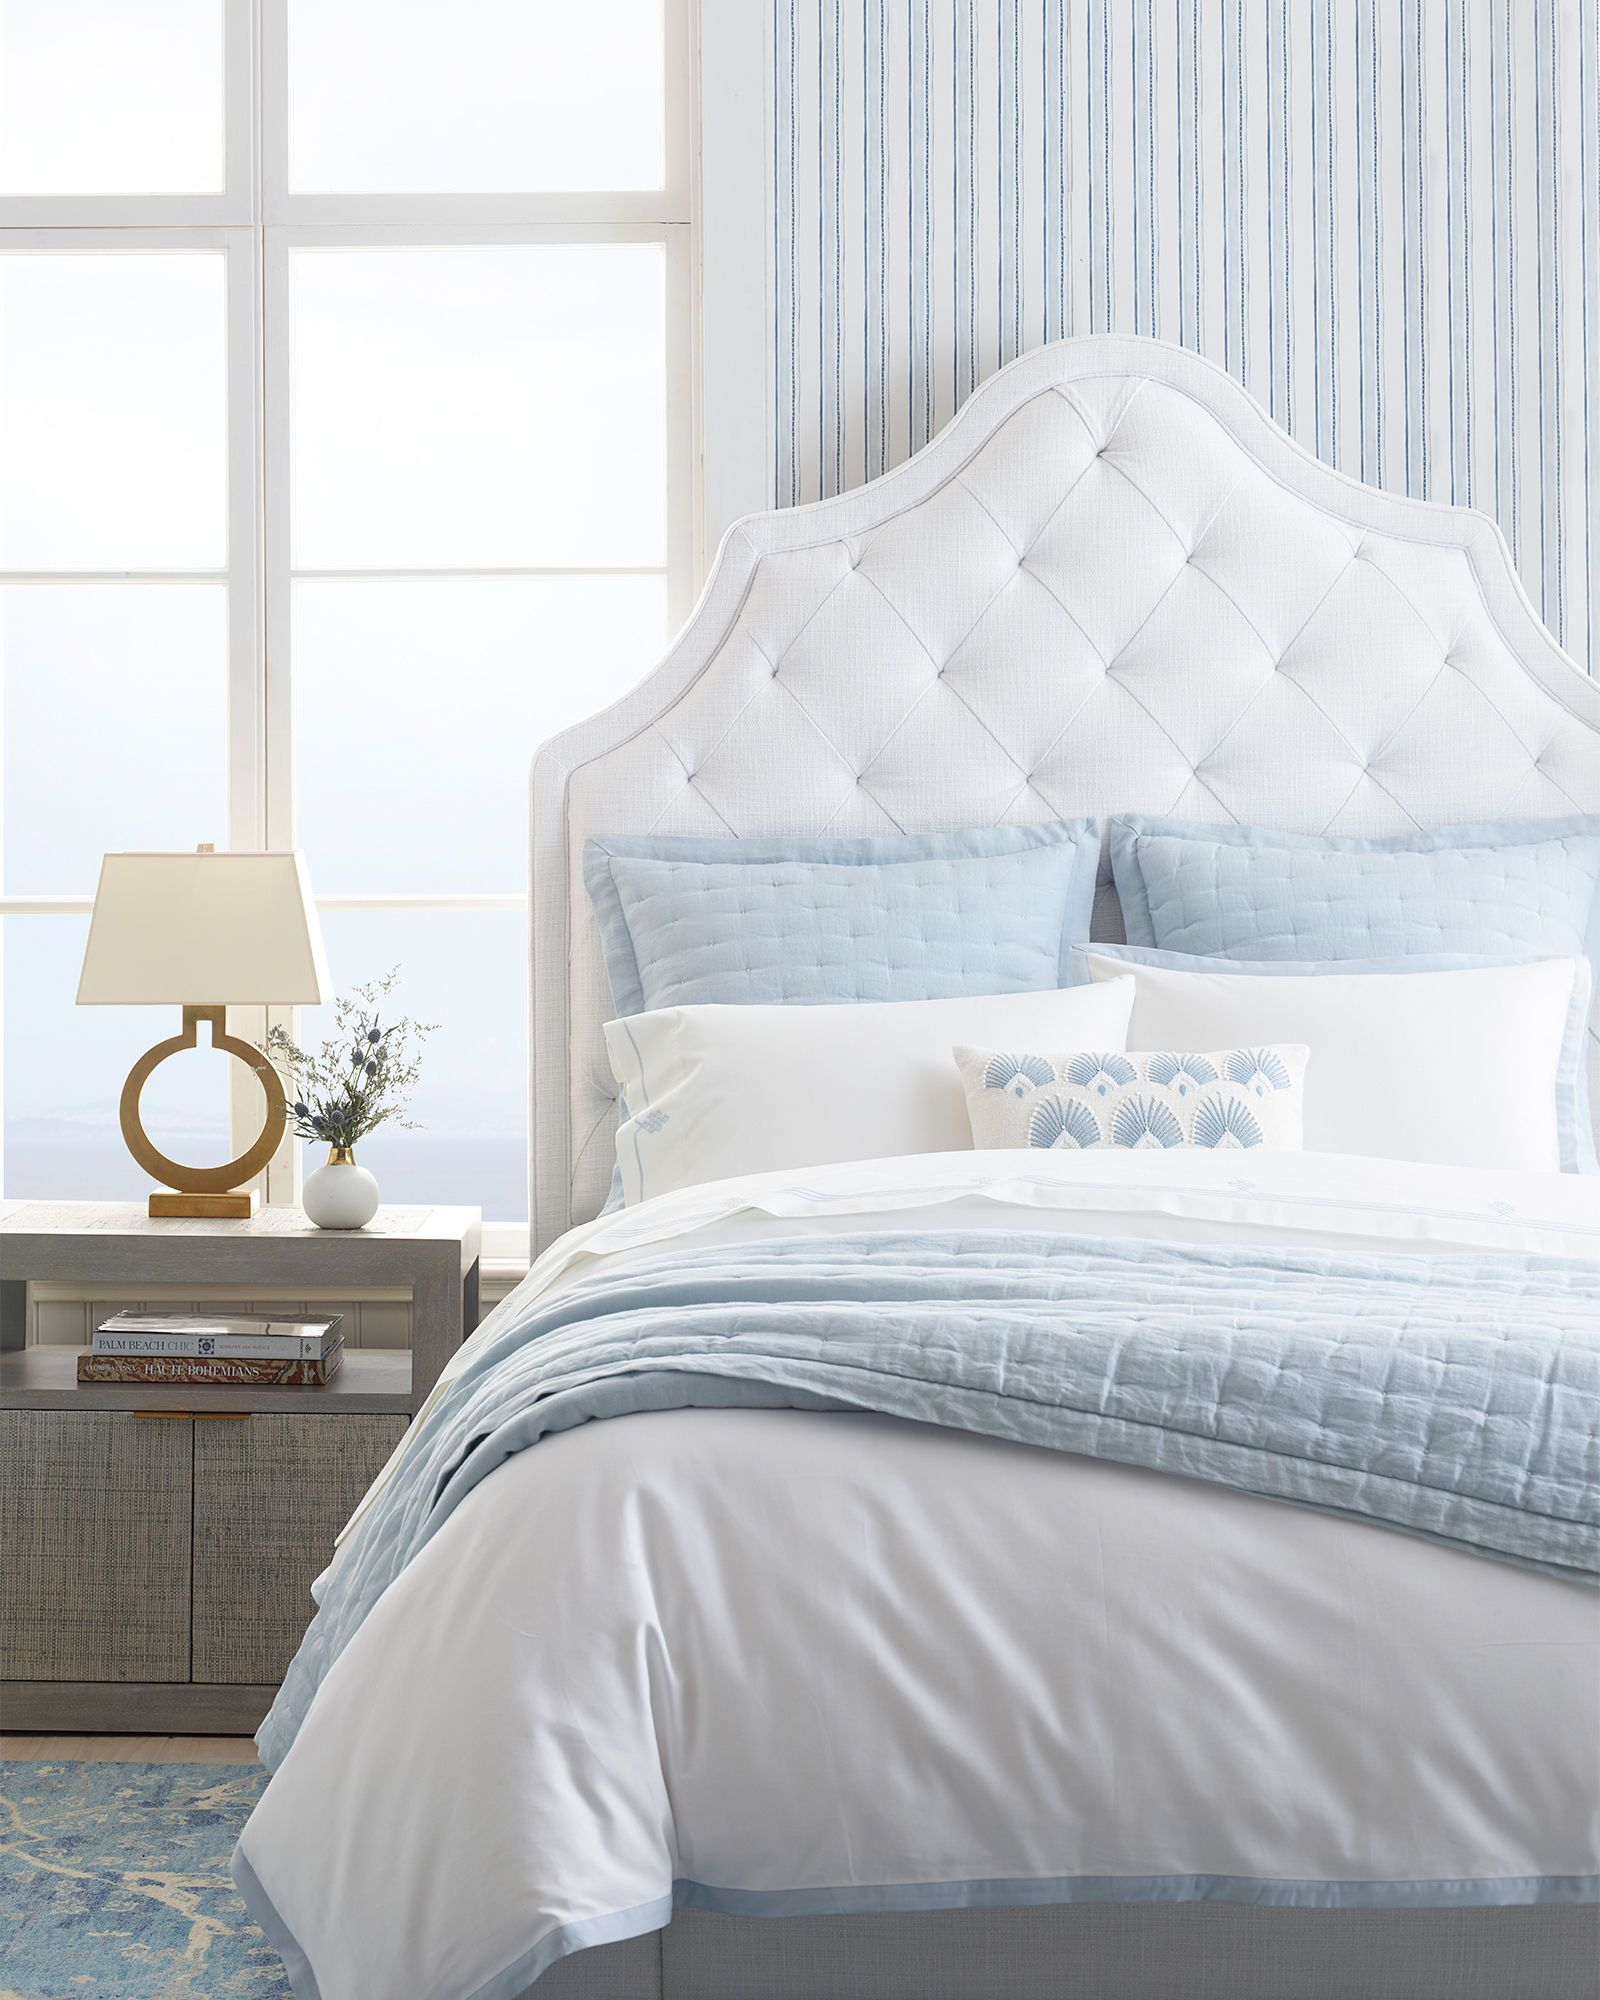 Swell Light Blue And White Bedroom Home Design Diy In 2019 Customarchery Wood Chair Design Ideas Customarcherynet